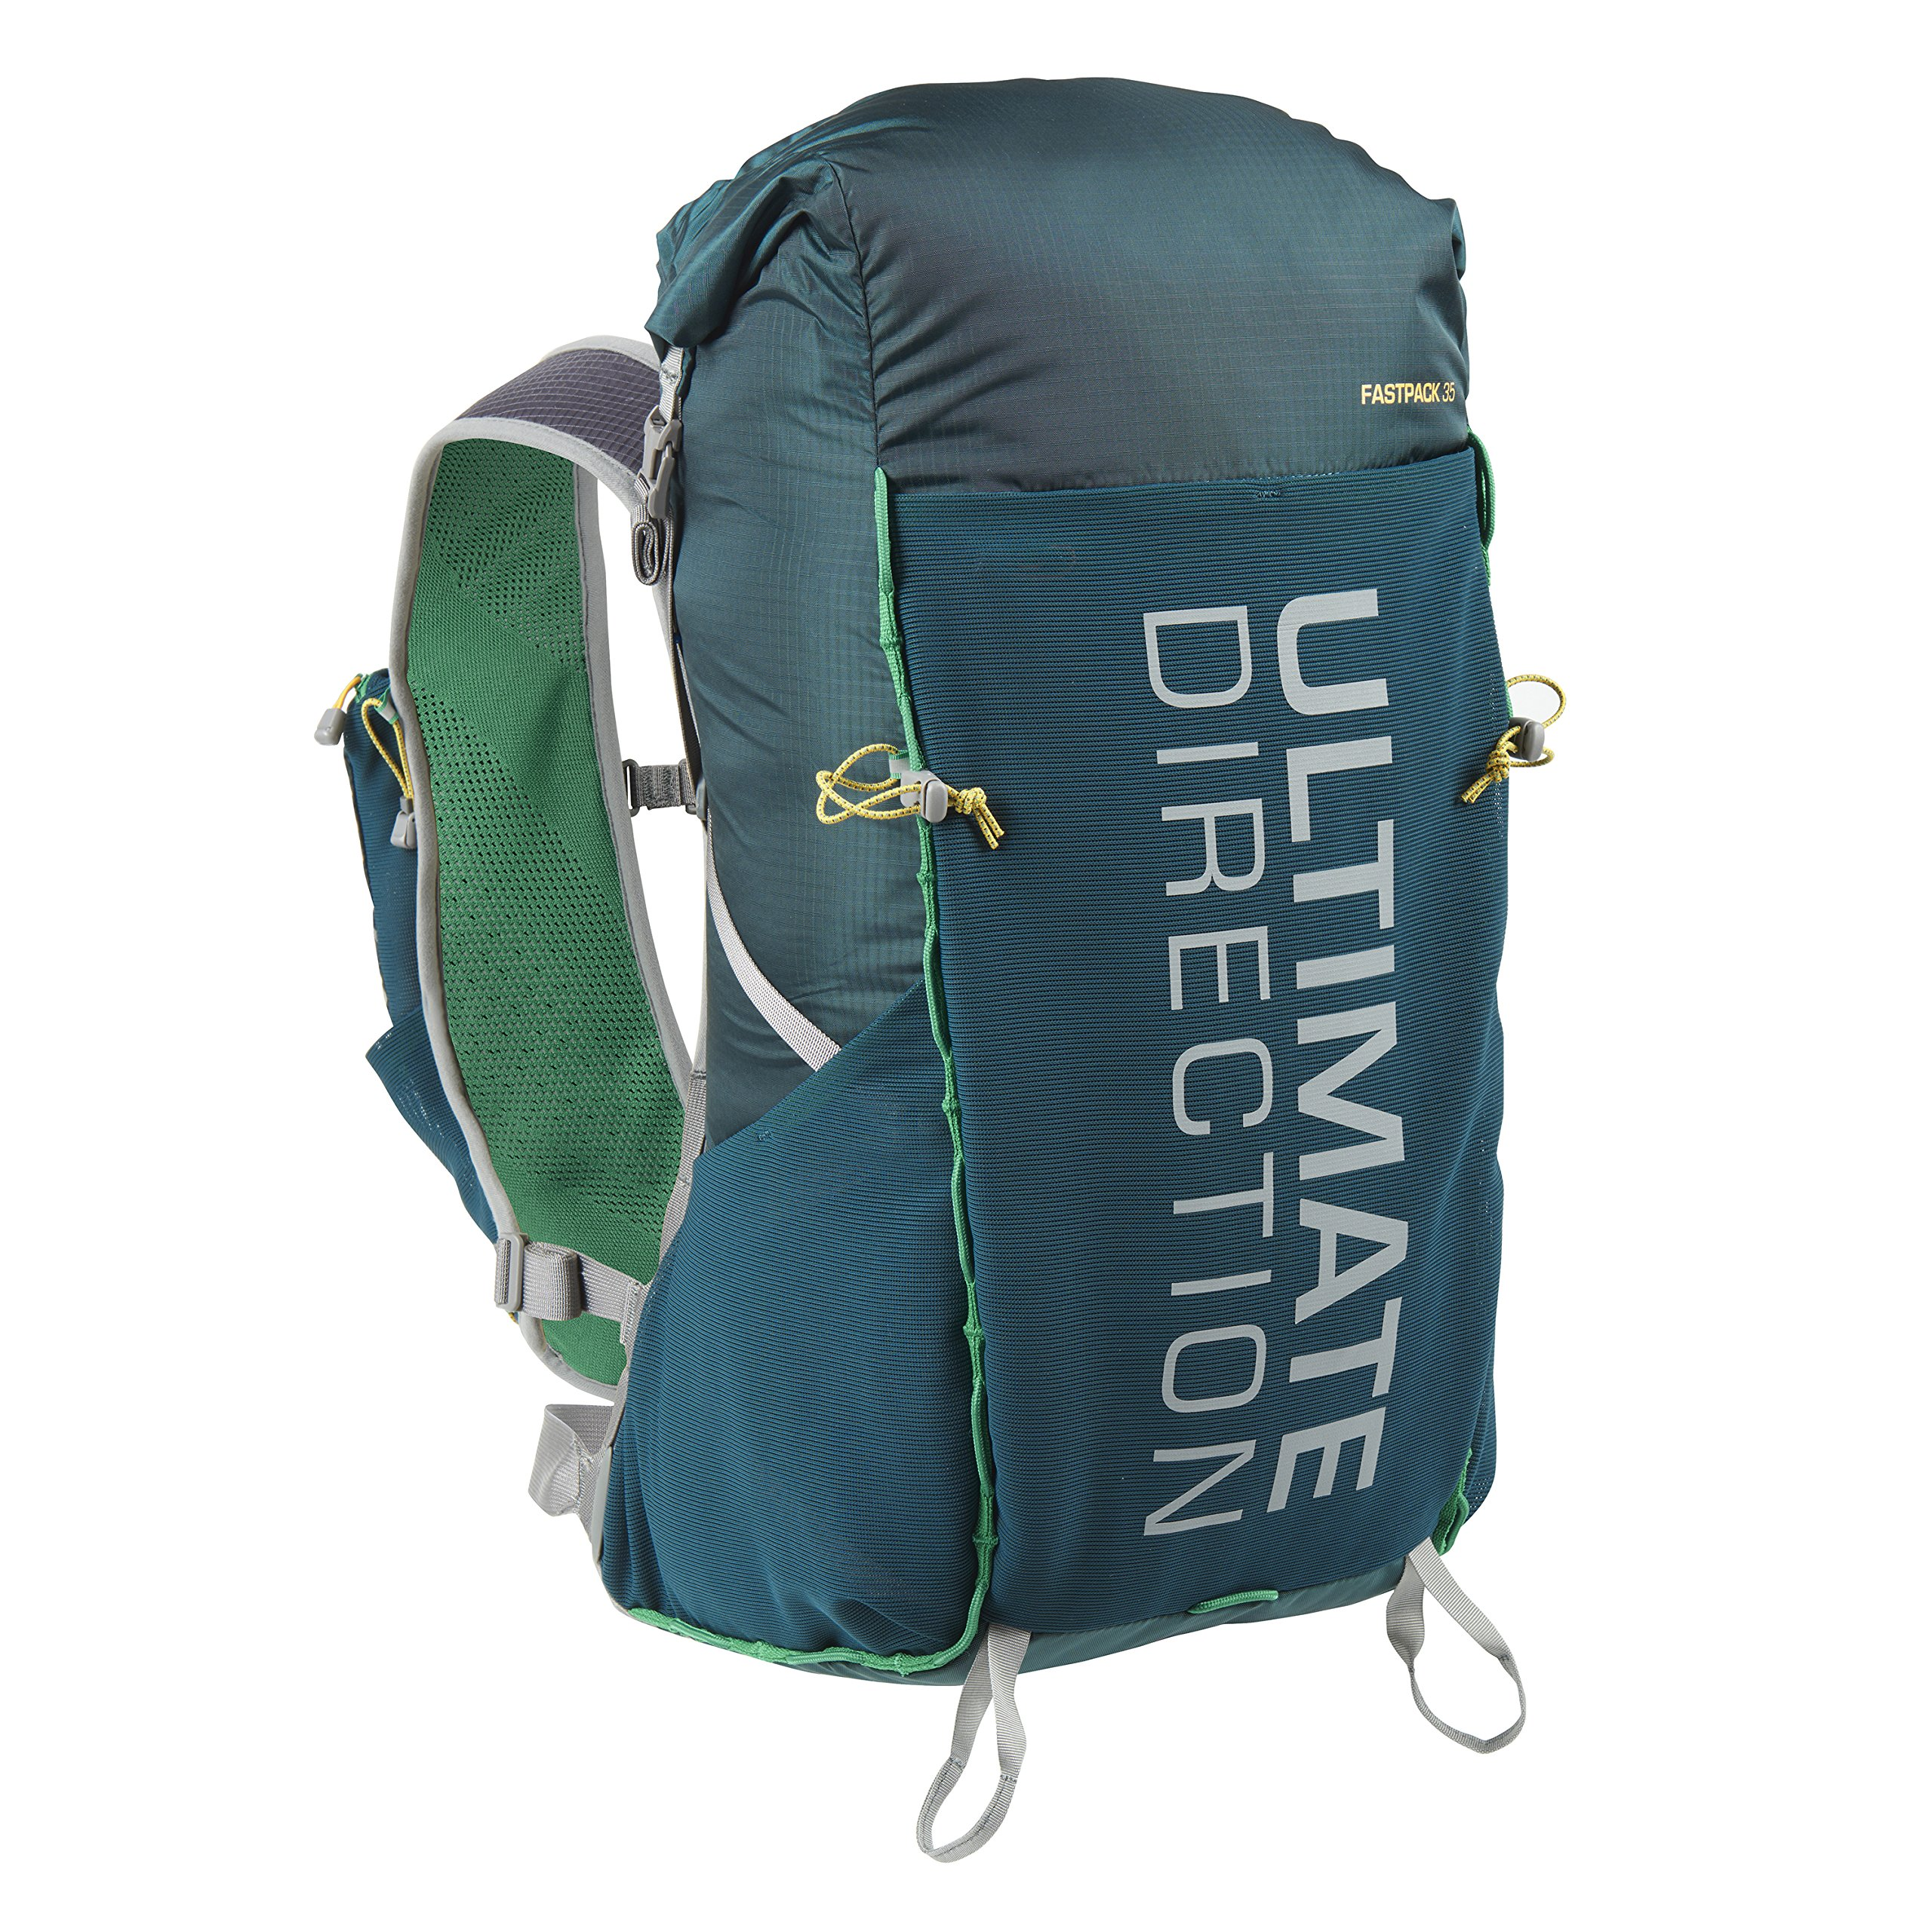 Ultimate Direction Fastpack 35, Spruce, Small/Medium